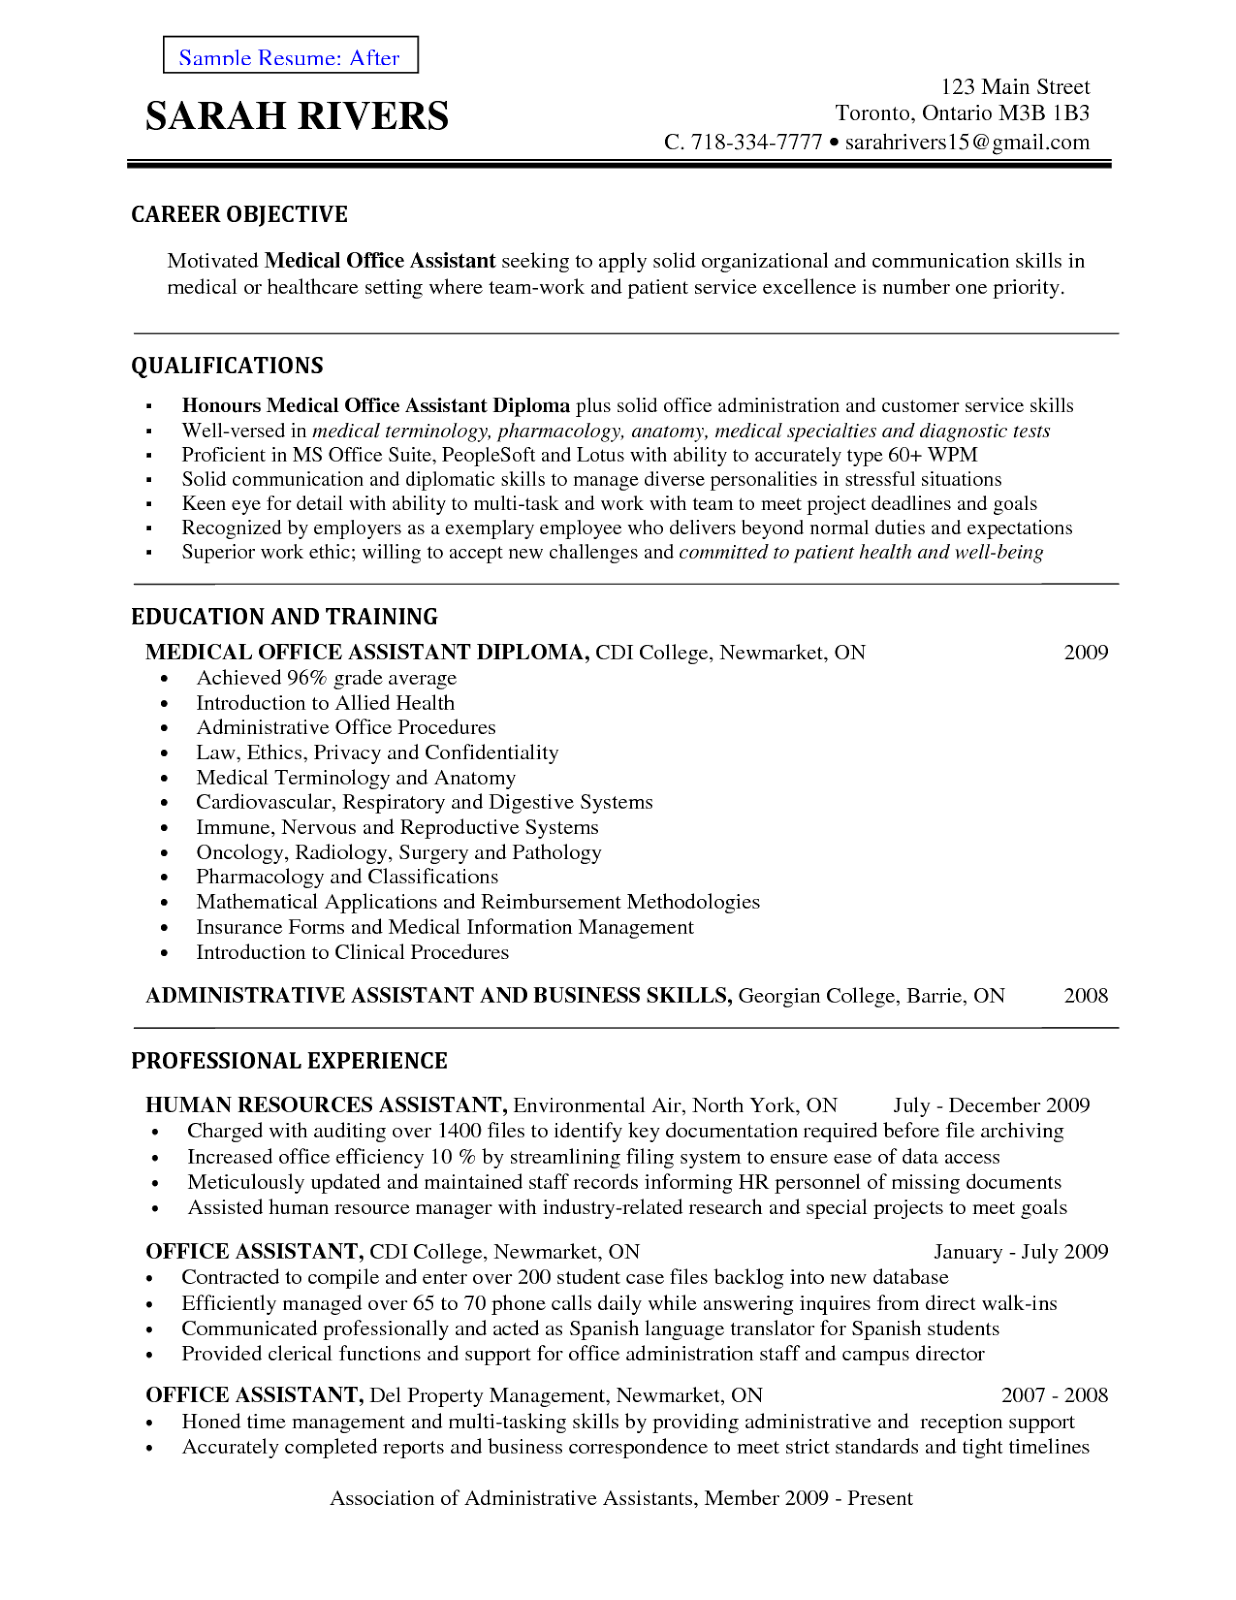 Structural Engineering Resume Examples Civil Engineering Career     Resume Career Objective Examples   professional resume objective